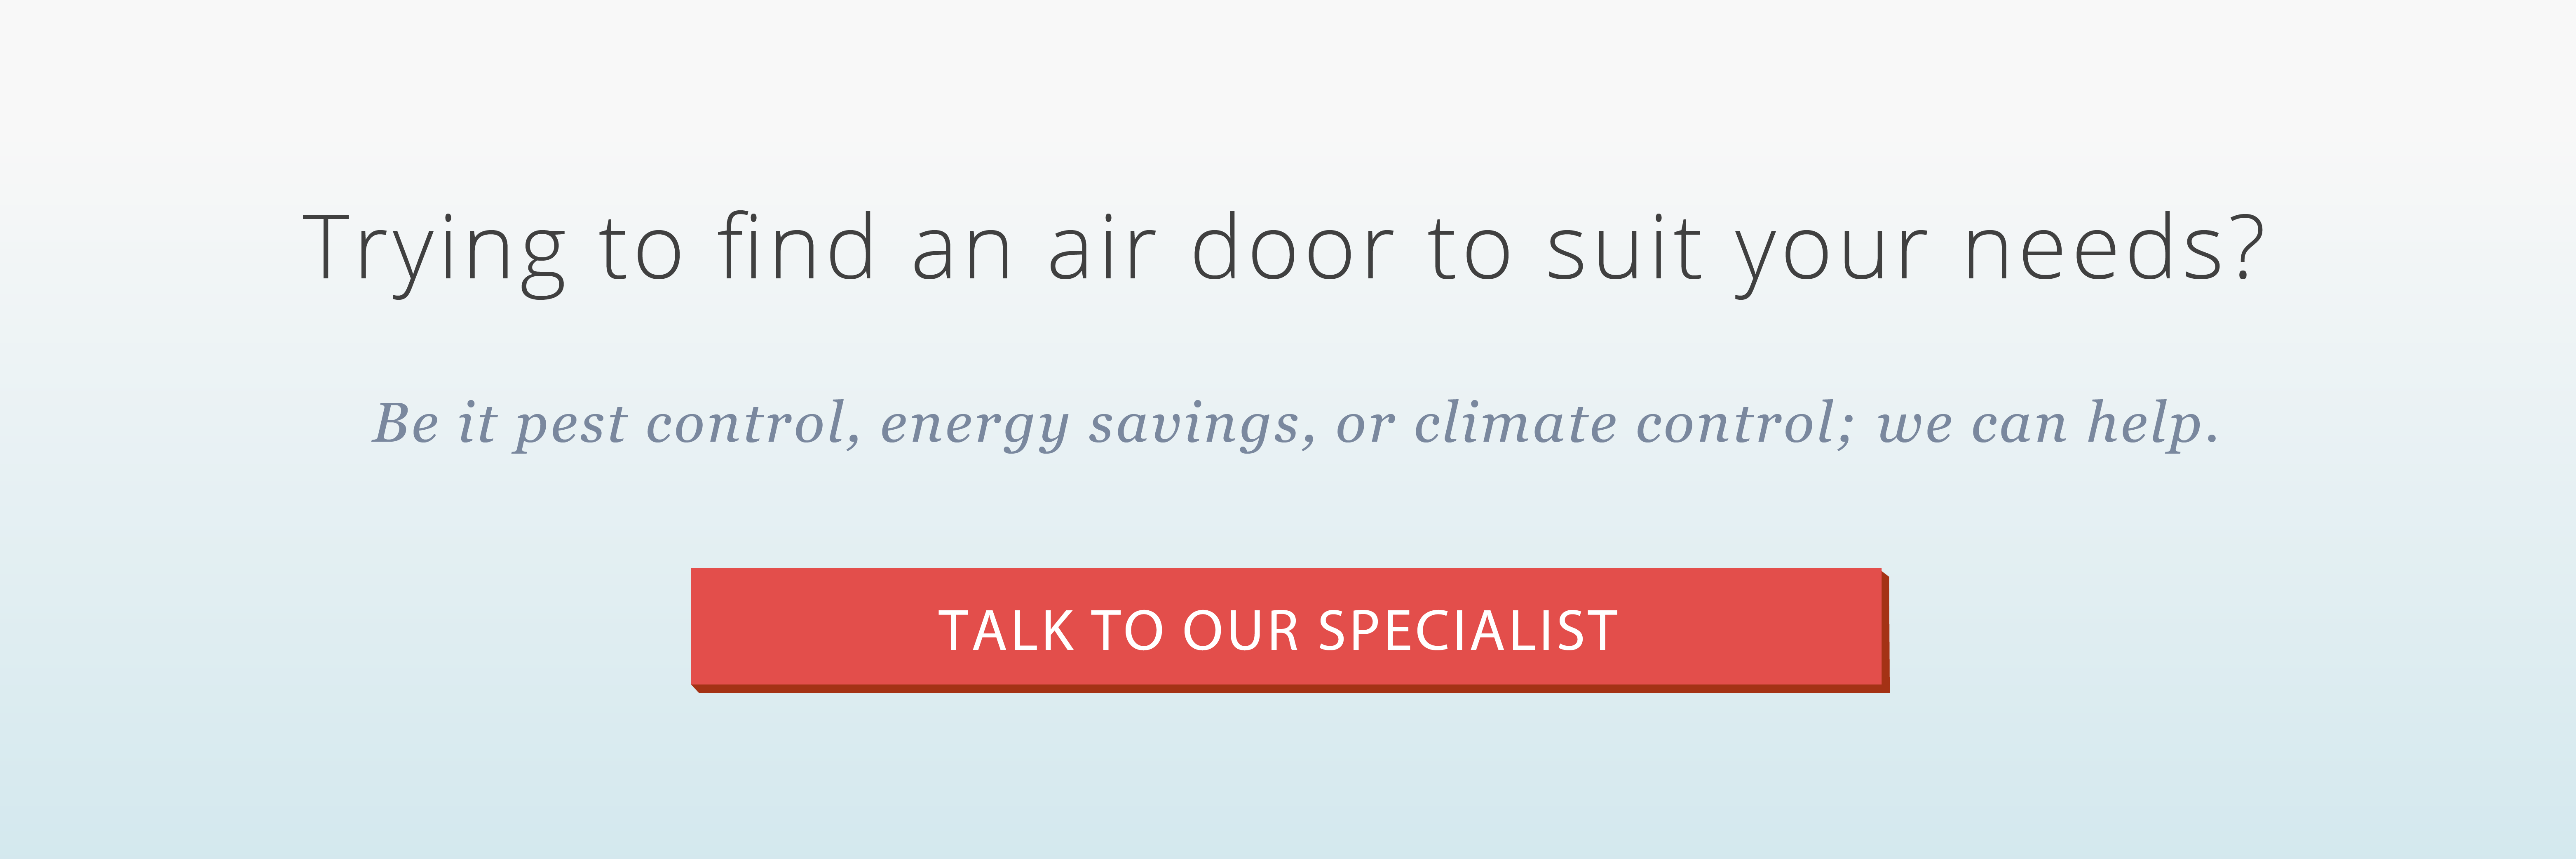 contact air door distributors to find a air curtain that suits your needs